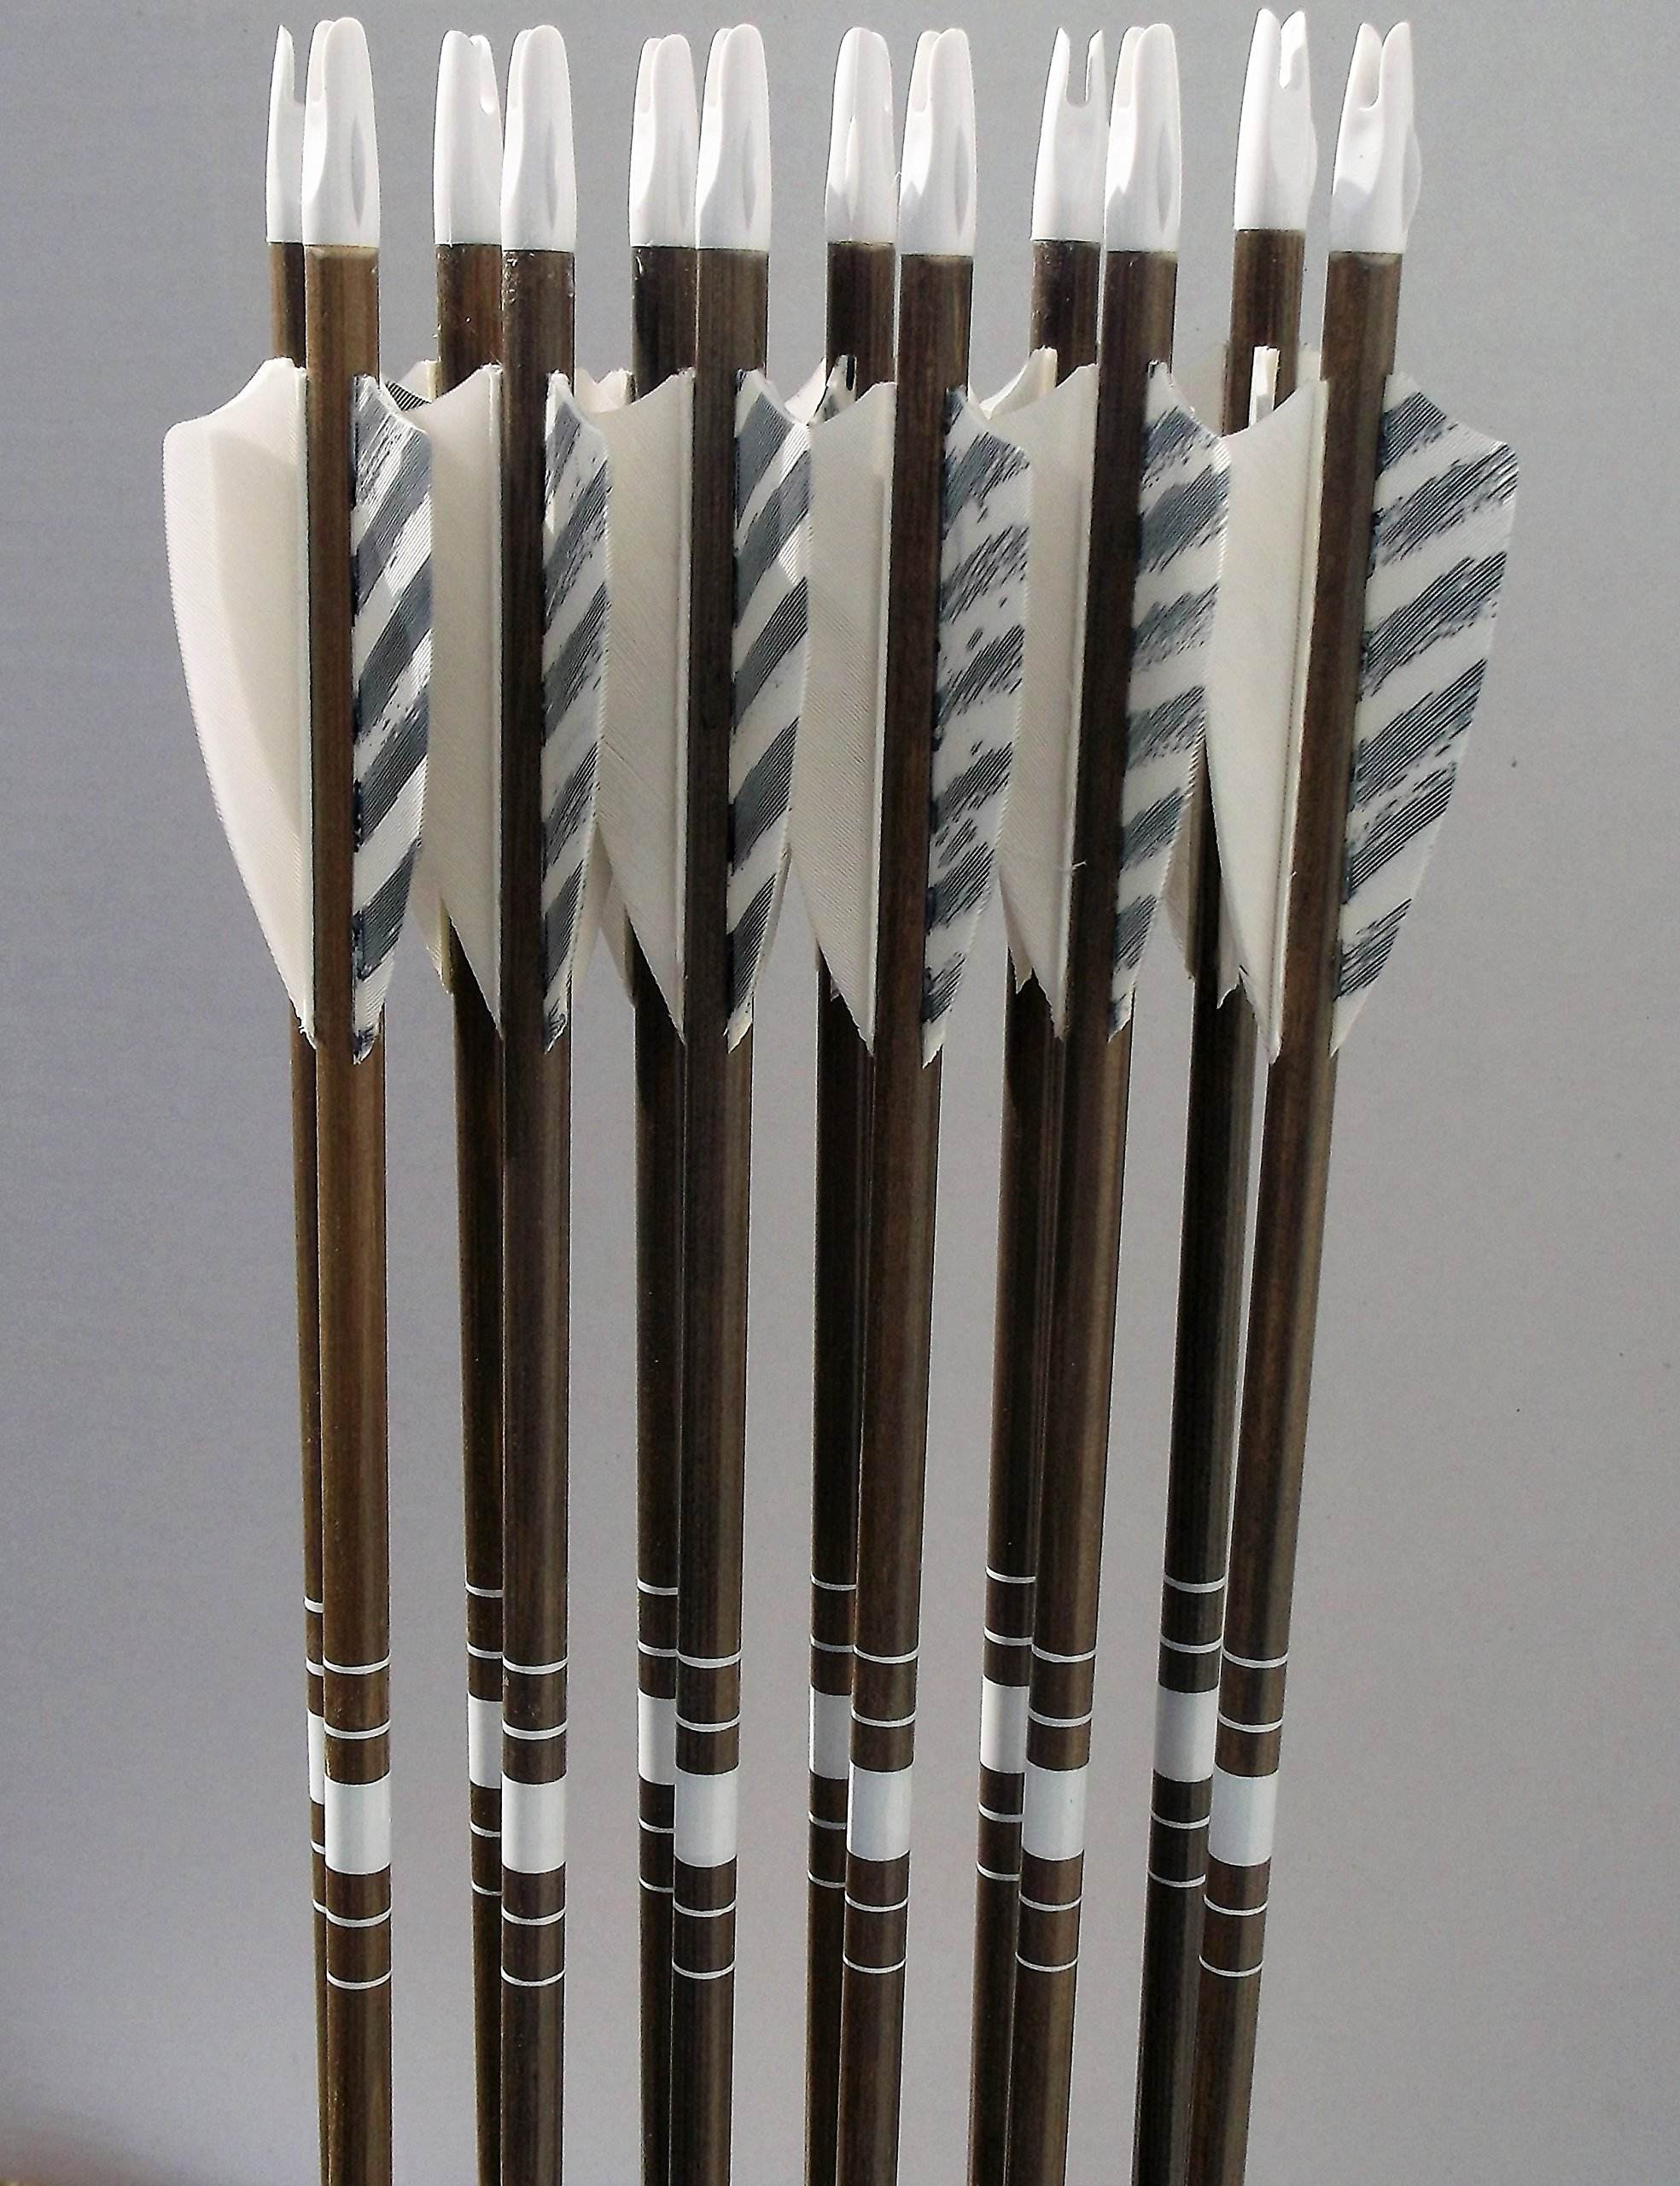 No Frontiers Archery Youth Cedar Arrows White/Barred Feathers (12) by No Frontiers Archery